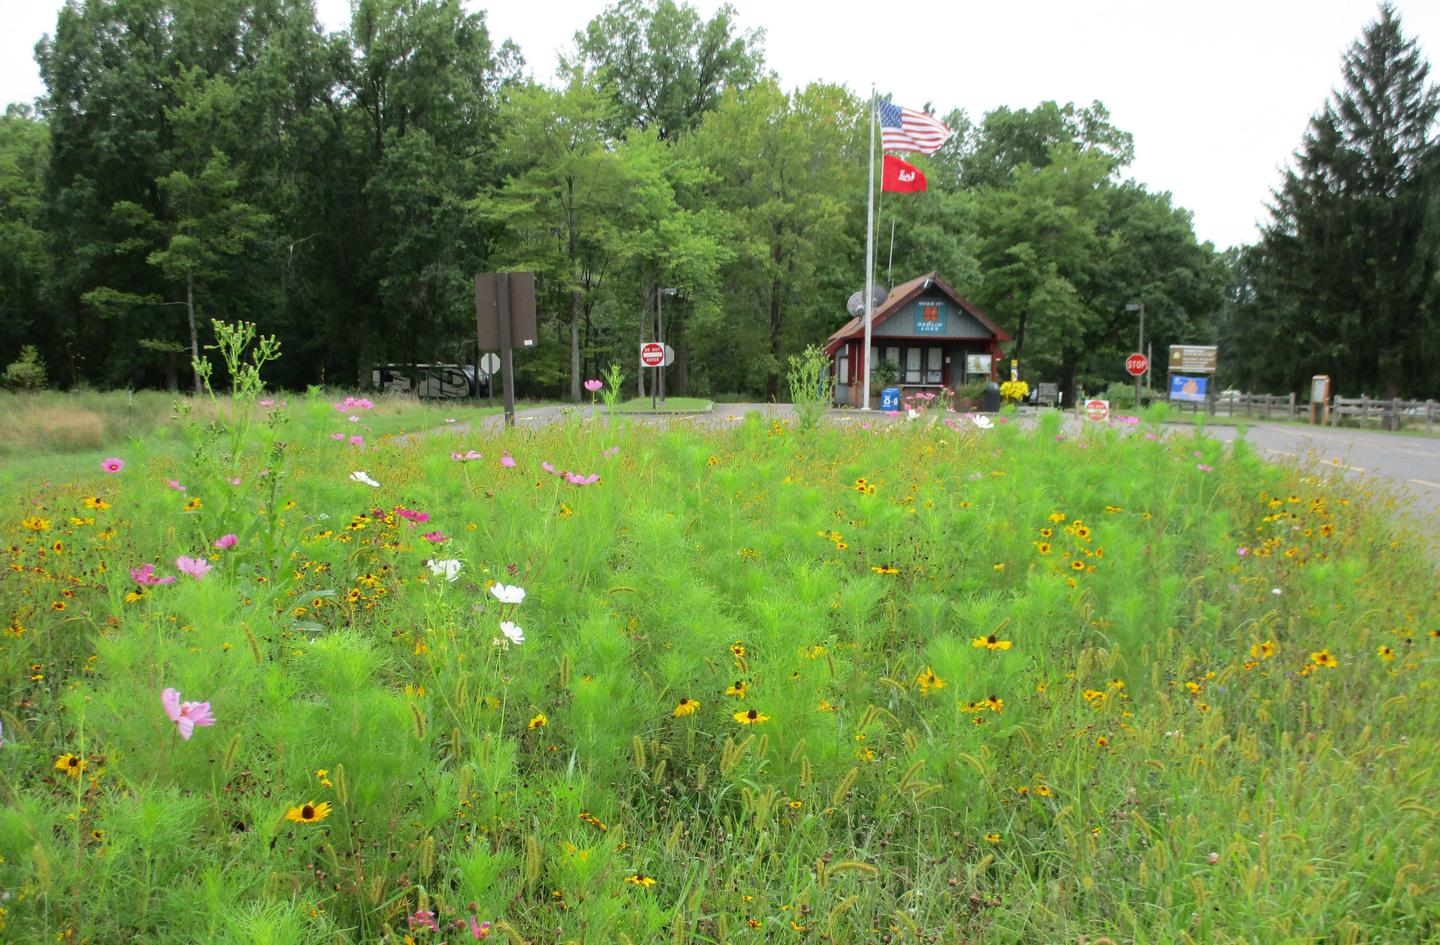 Pollinator Plot at the entrance booth for the Mill Creek Campground.